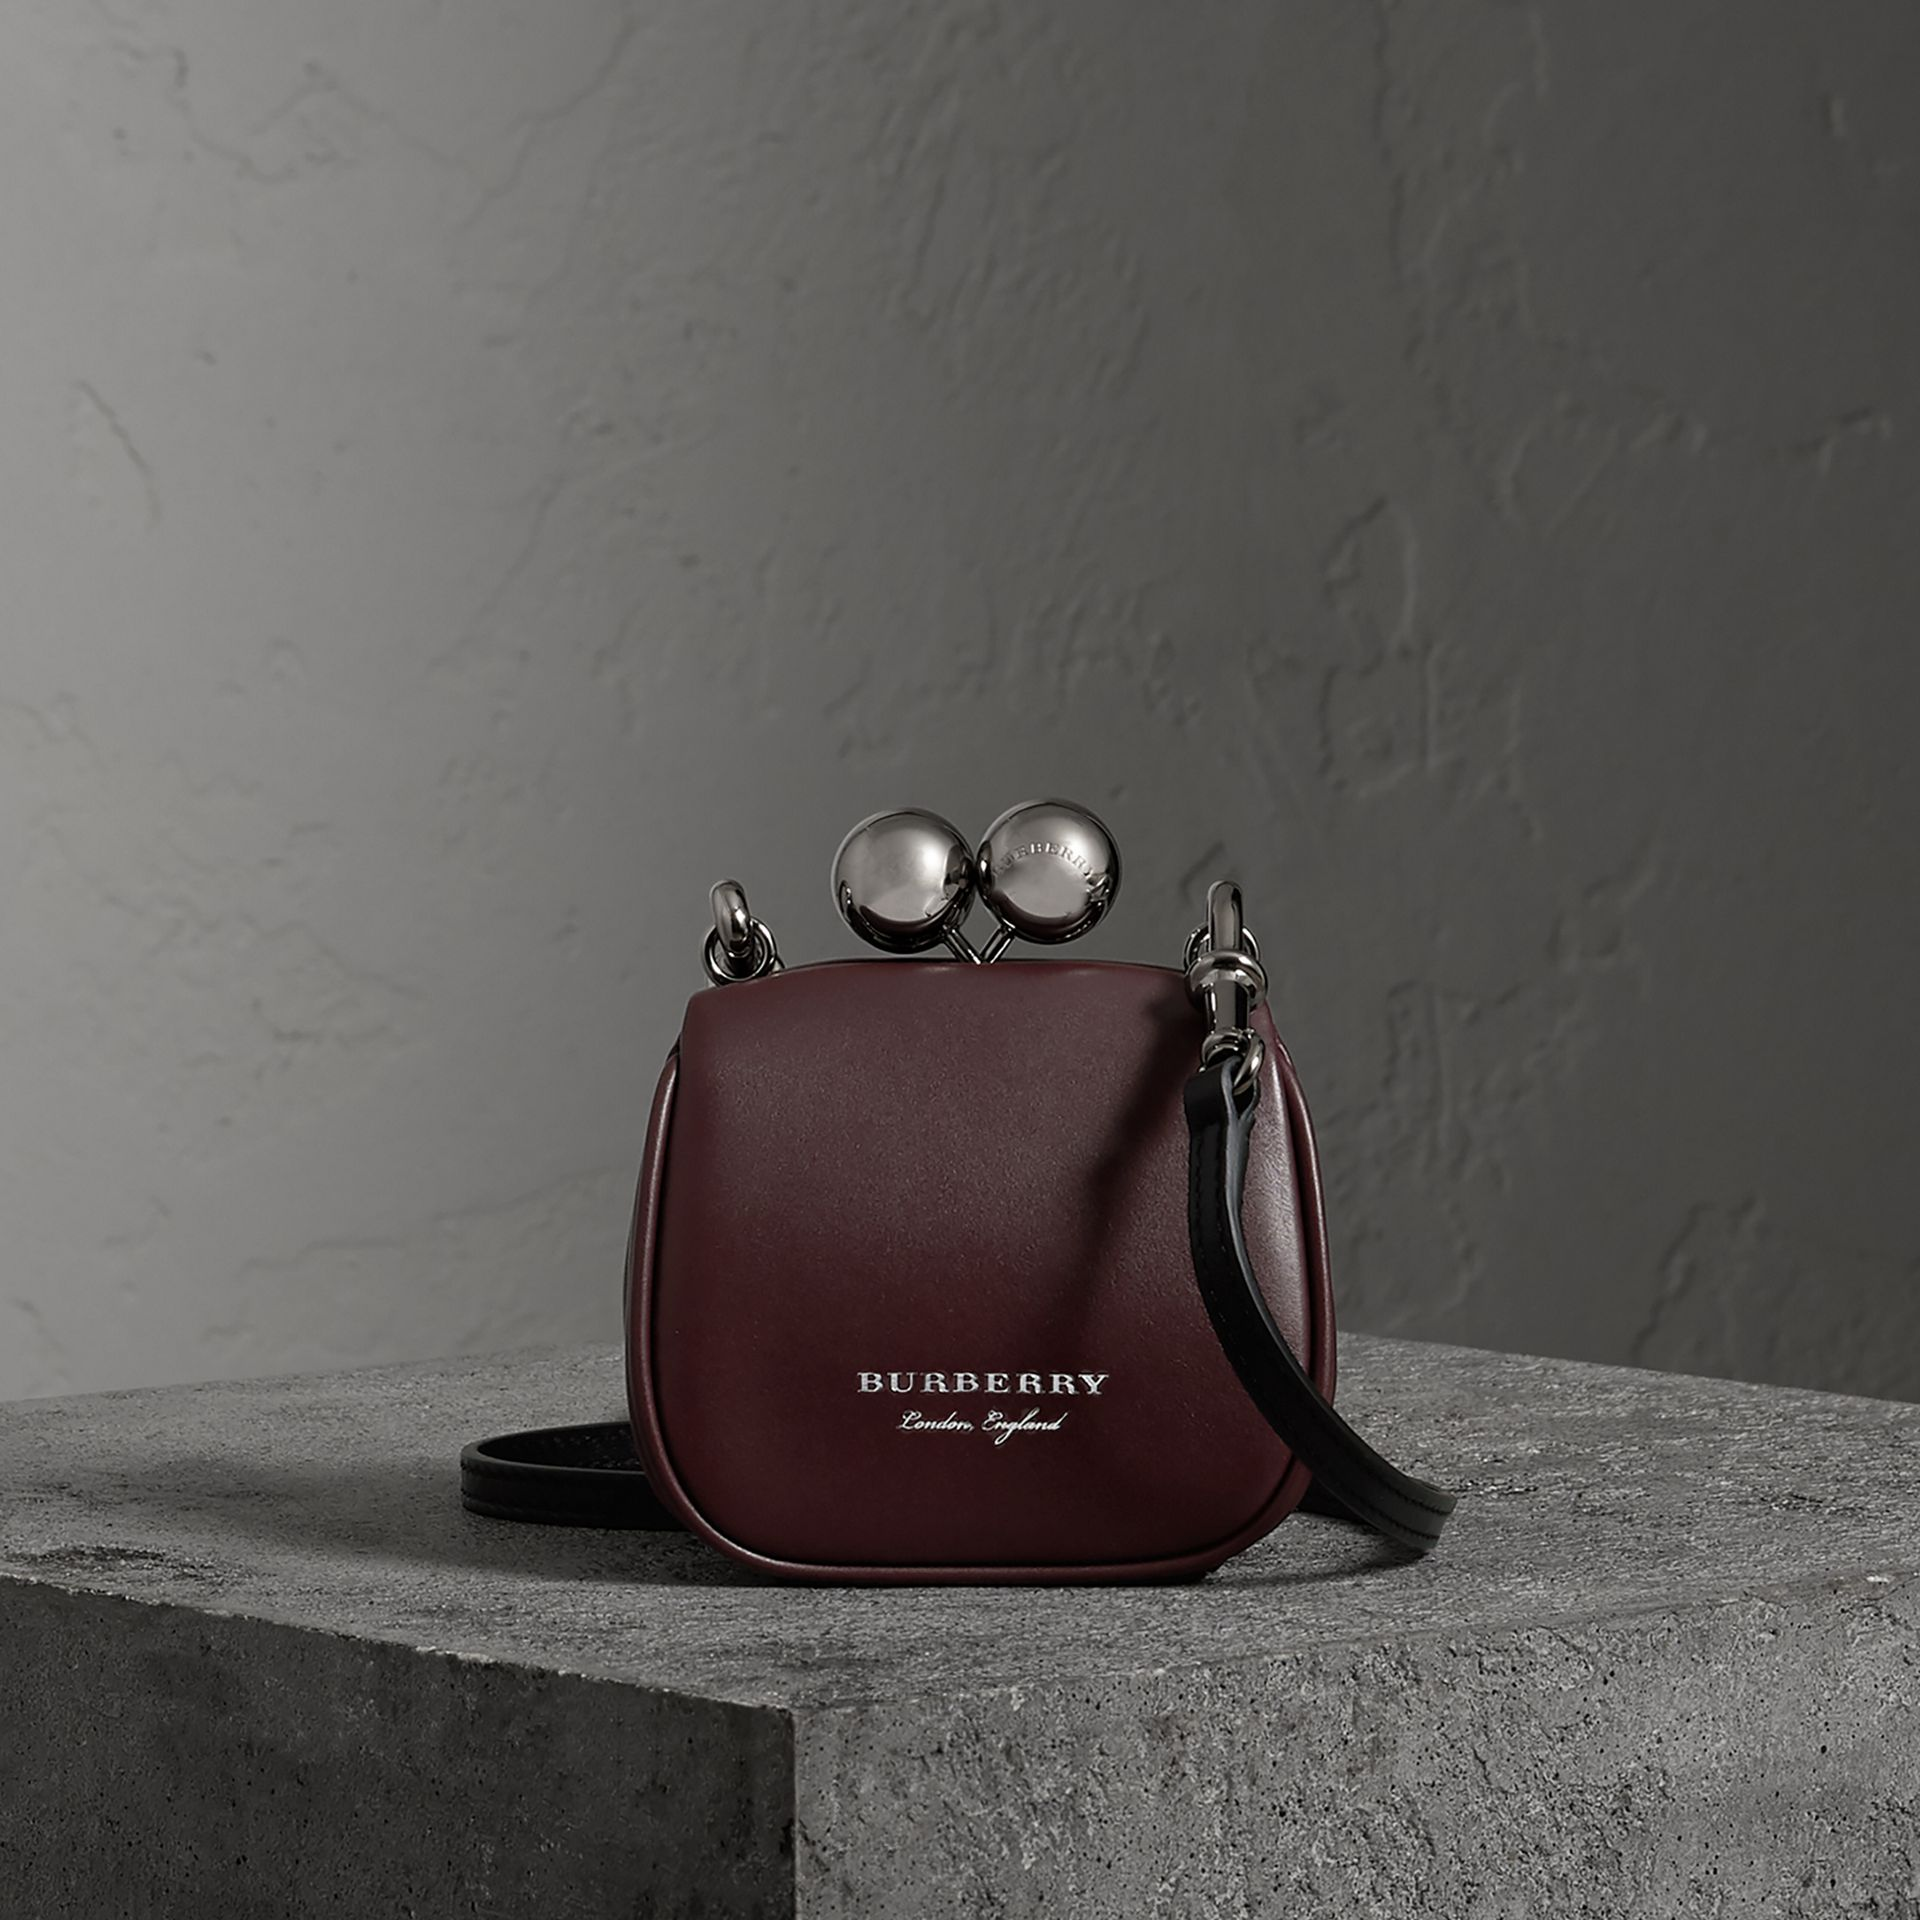 Mini Two-tone Leather Frame Bag in Burgundy - Women | Burberry United Kingdom - gallery image 0